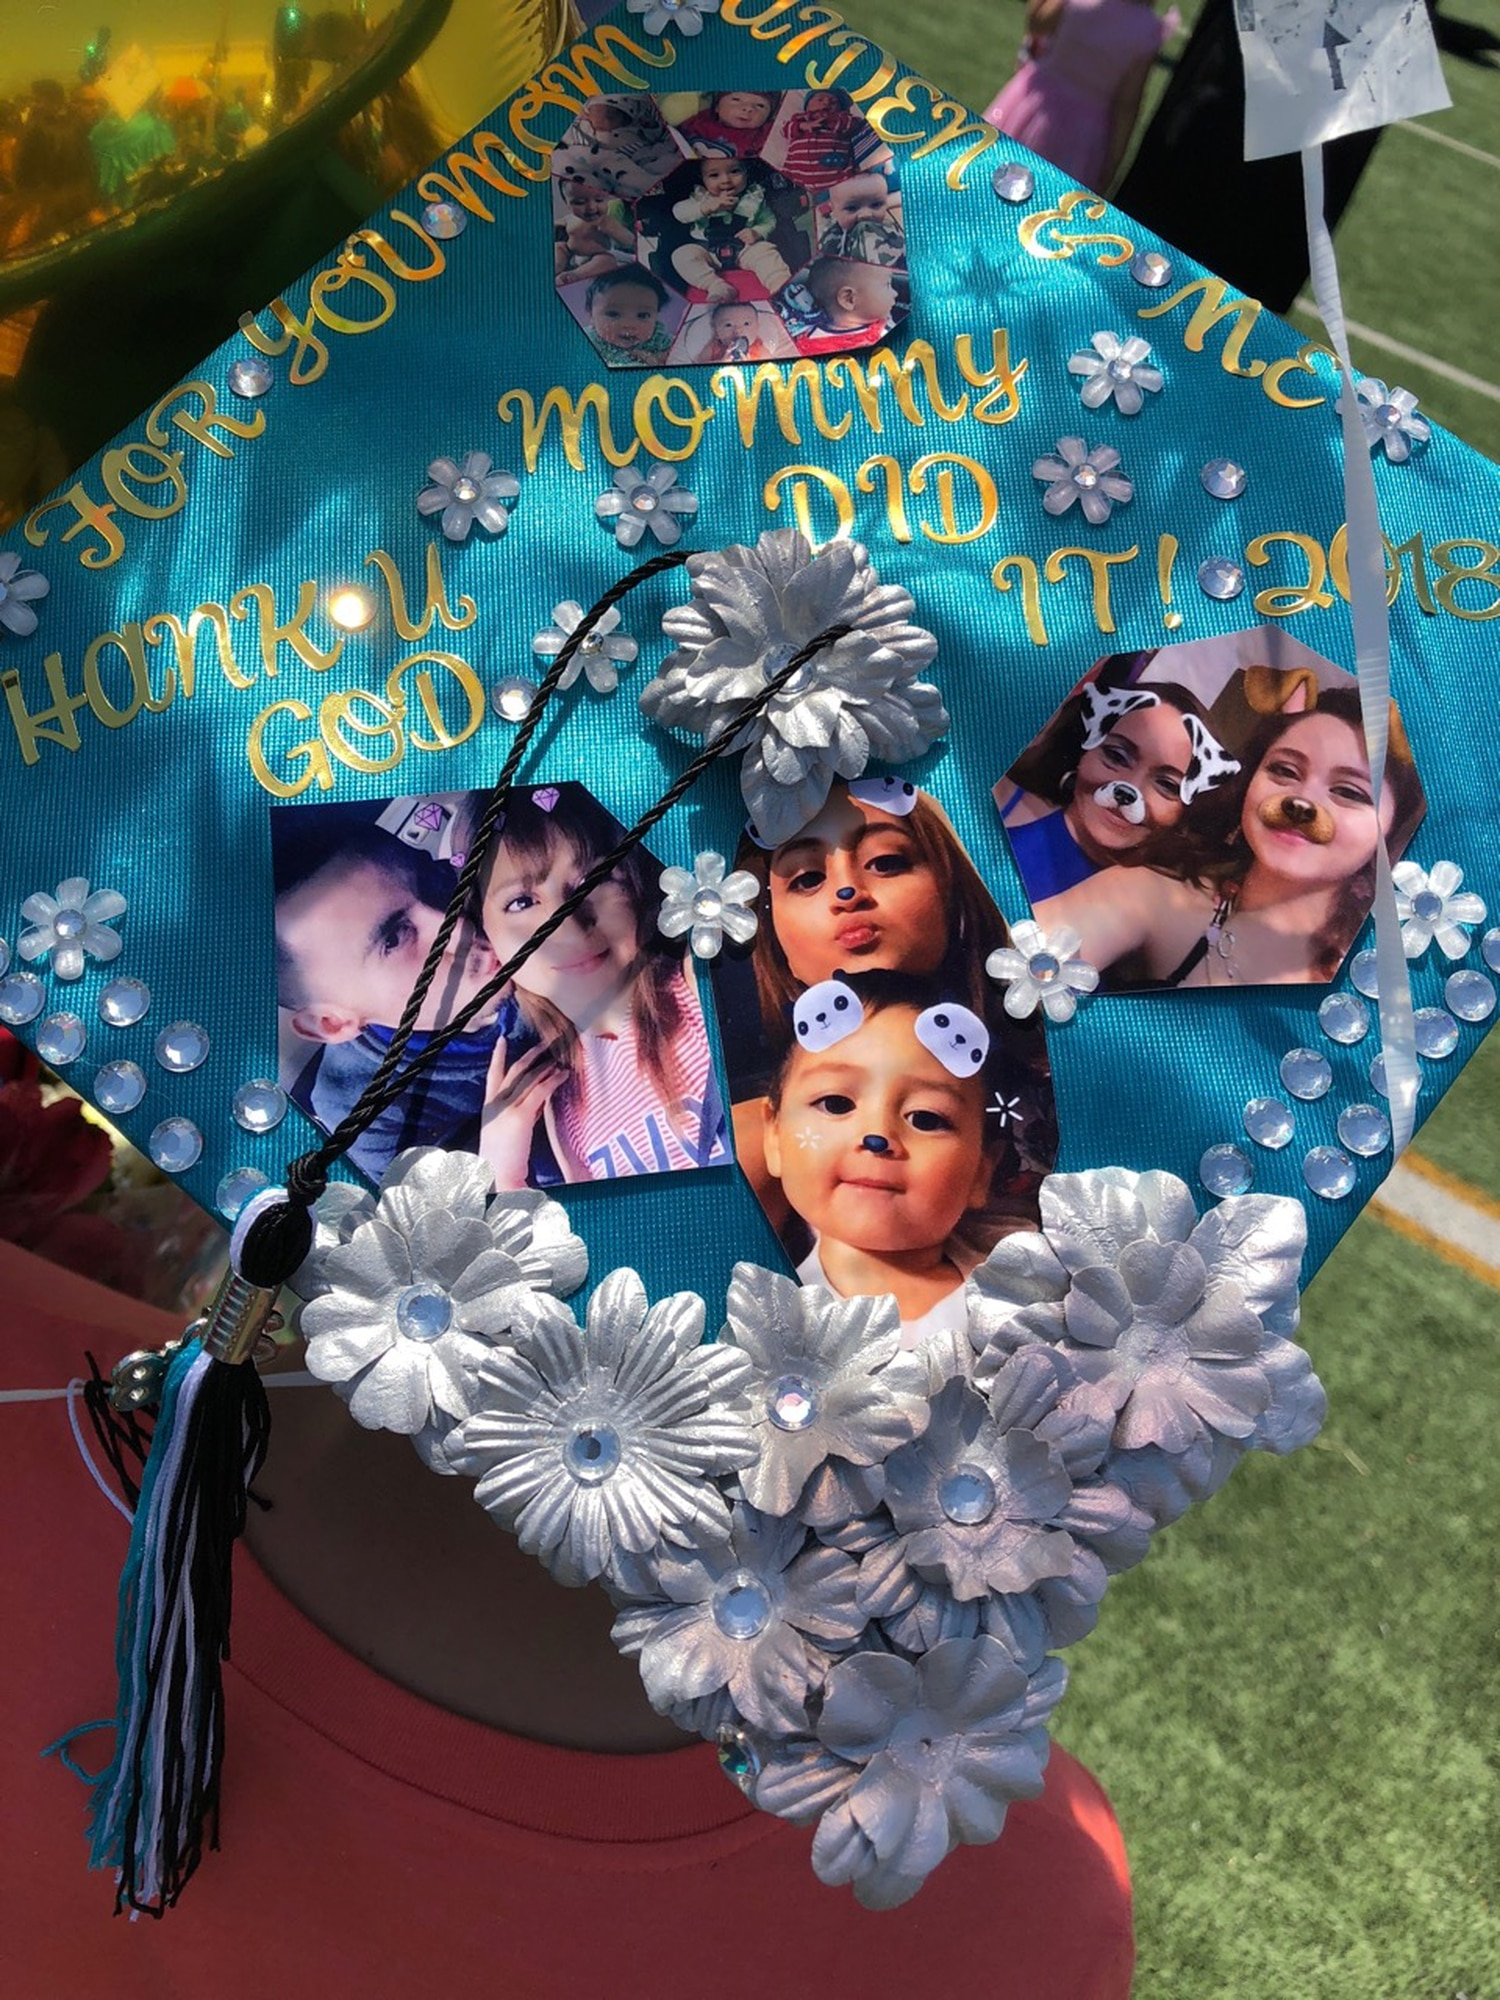 """Stephanie Solis Mendoza decorated her graduation cap with """"Mommy did it!"""""""